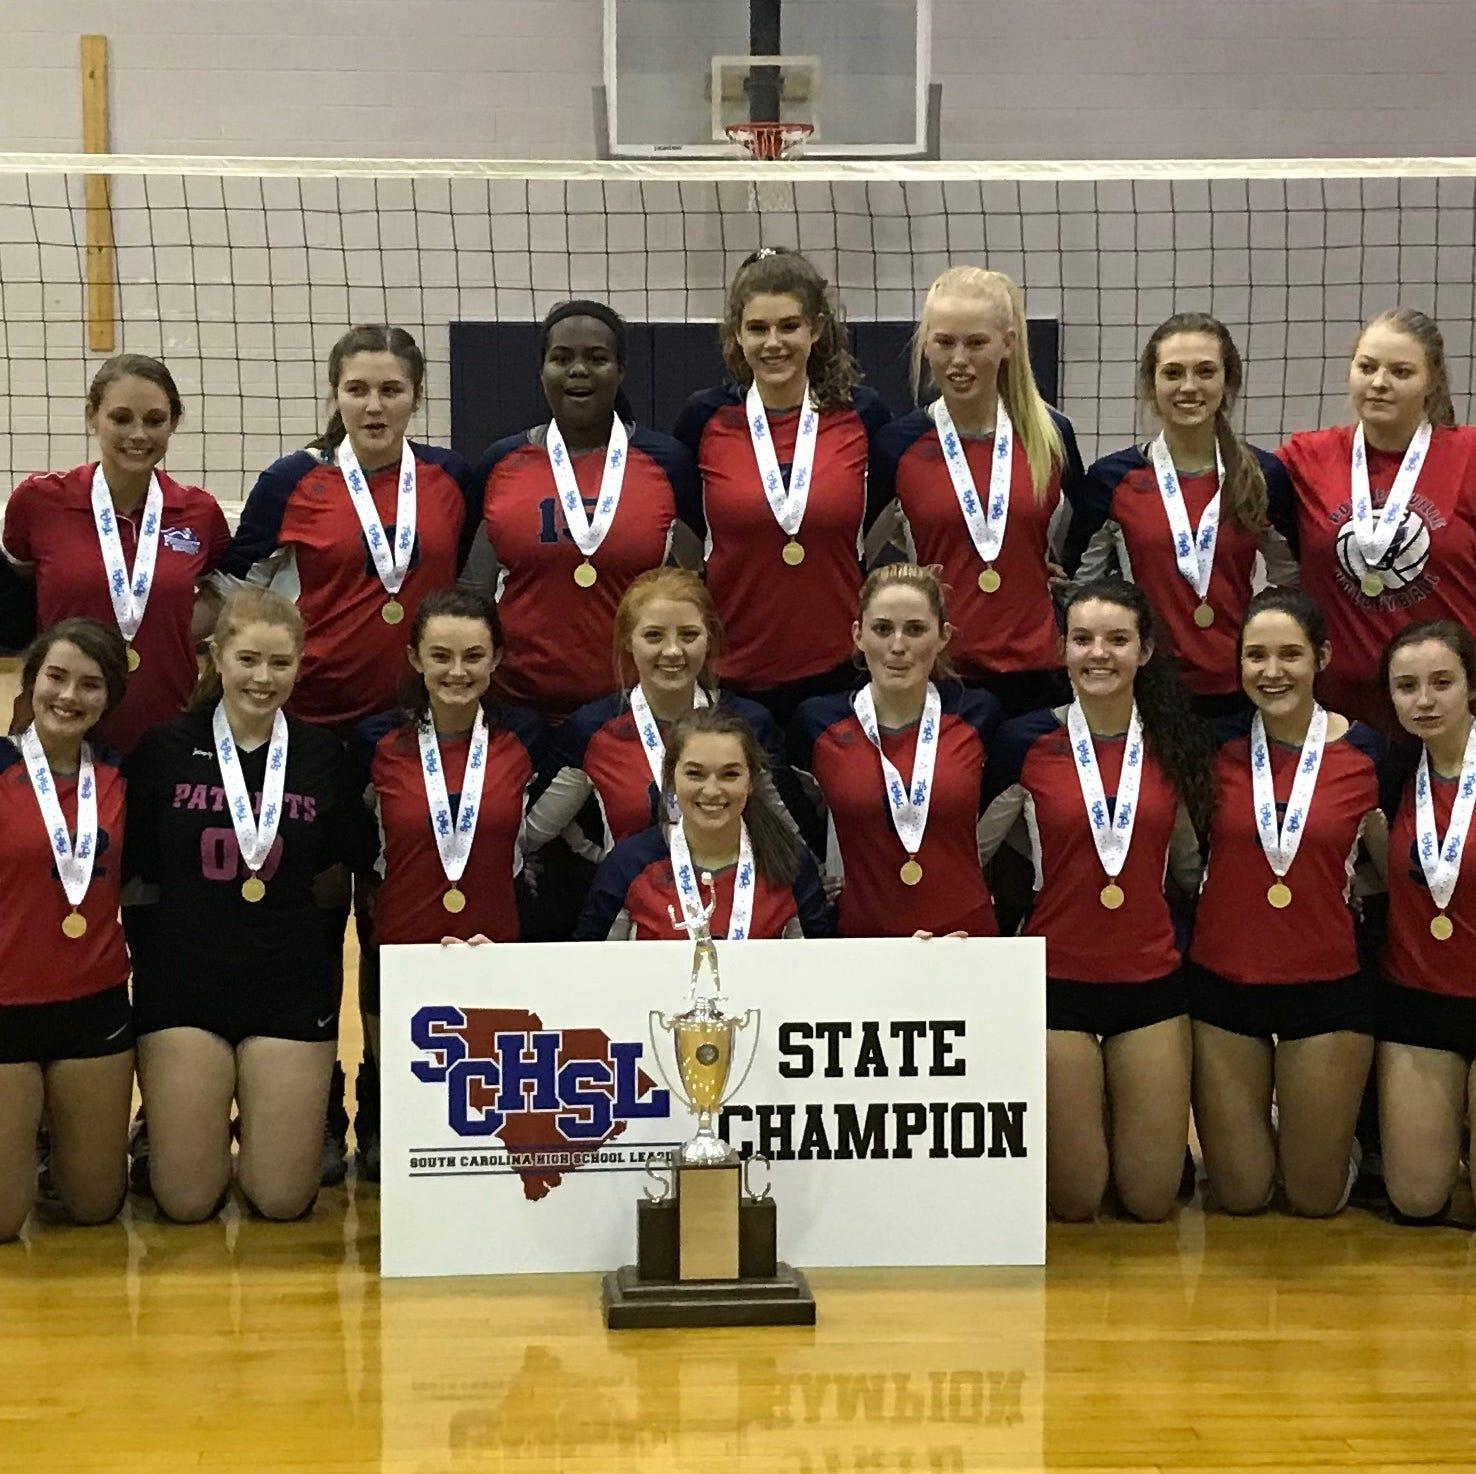 Powdersville defeated Bishop England to win the Class AAA state volleyball championship. The win snapped a national record of 18 consecutive volleyball state championships by the Bishops.